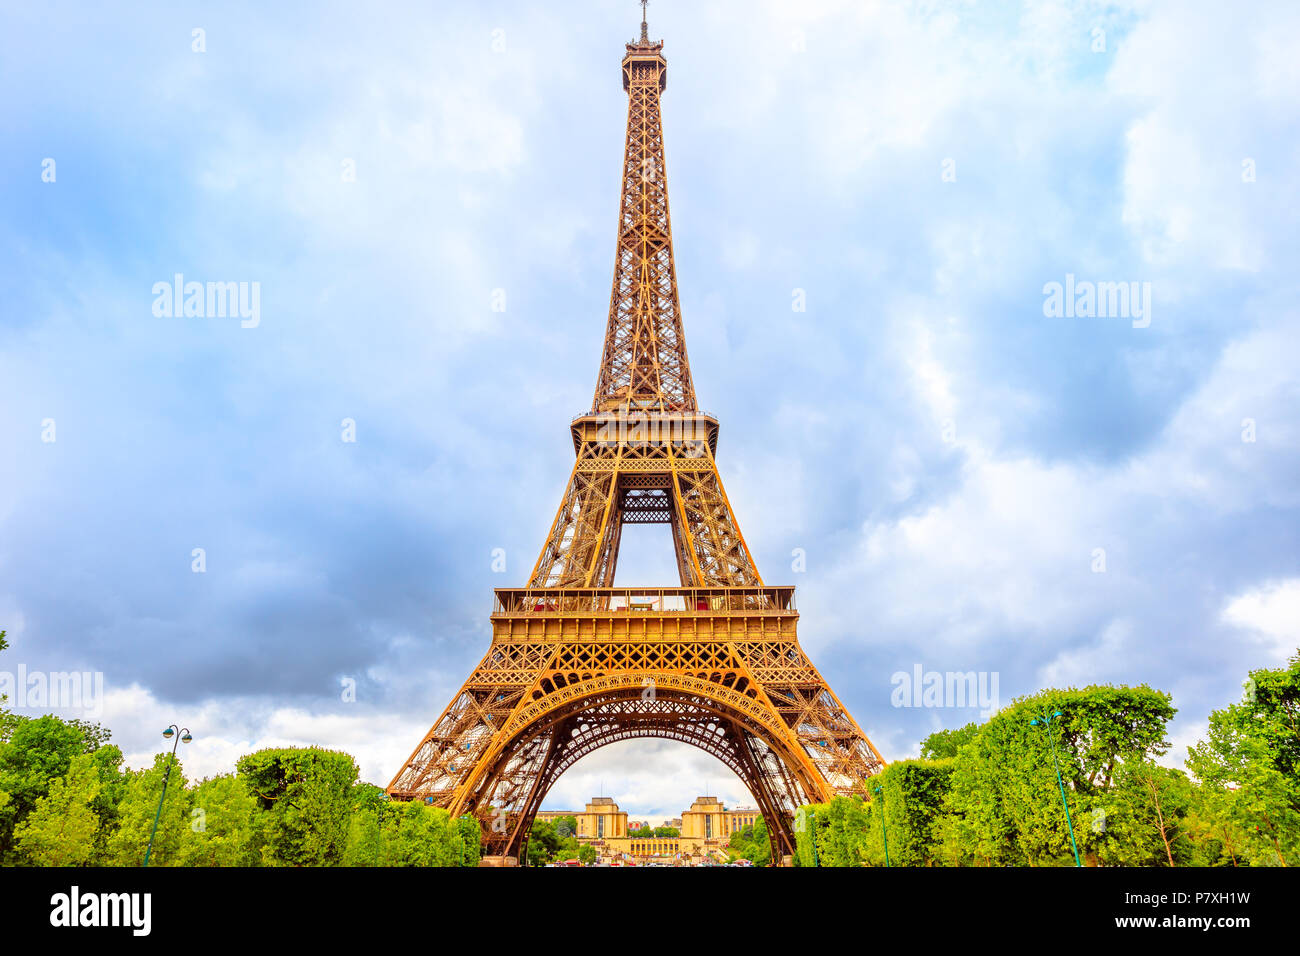 Tour Eiffel, symbol and icon of Paris from Champ de Mars garden in Paris, France. Europe travel concept. Cloudy day. - Stock Image